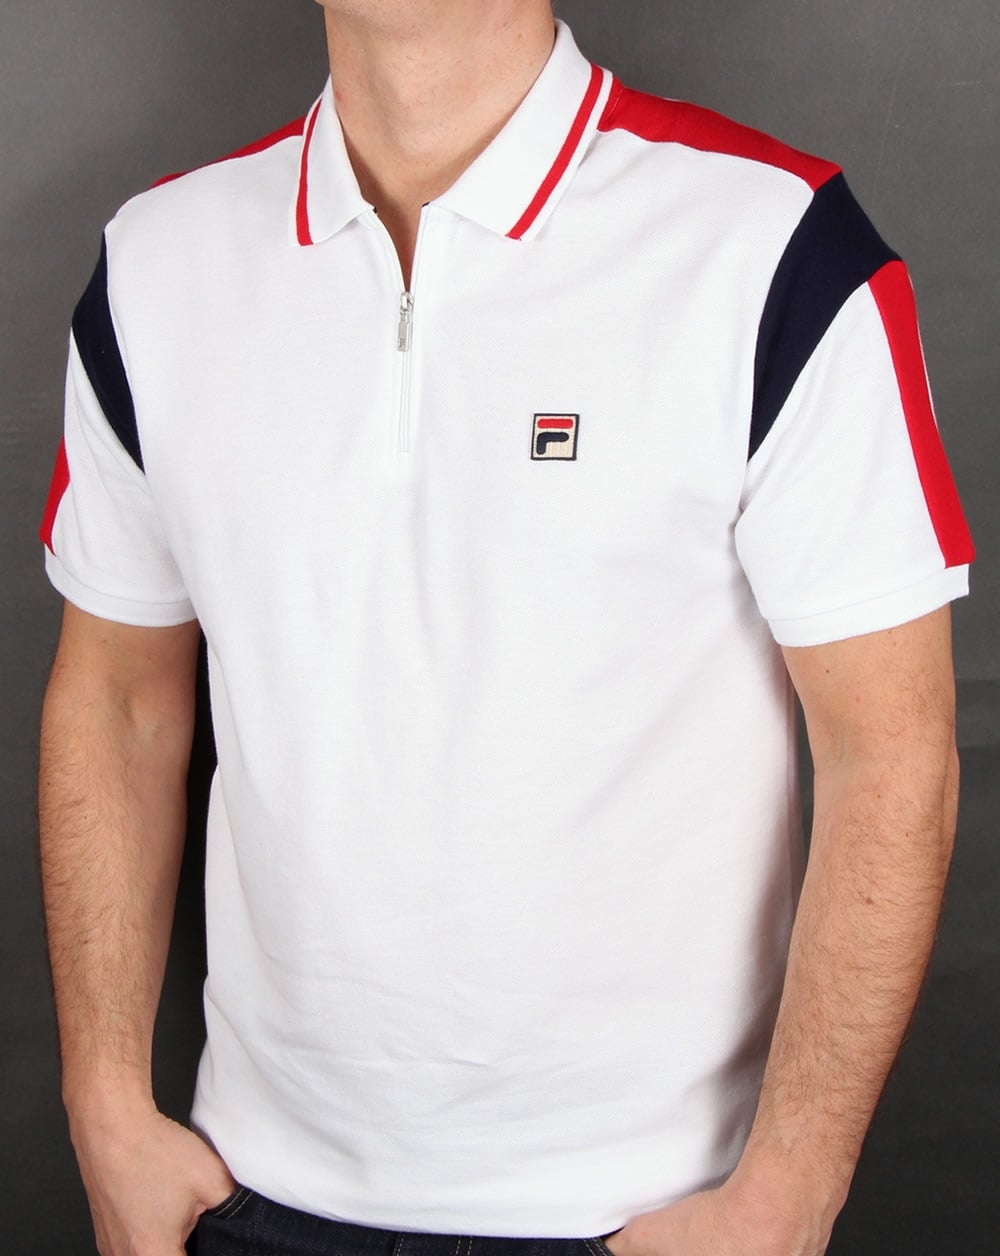 Motvilja tabell uttag  Fila Vintage Fabbiano Polo Shirt White,zipped,cotton,mens